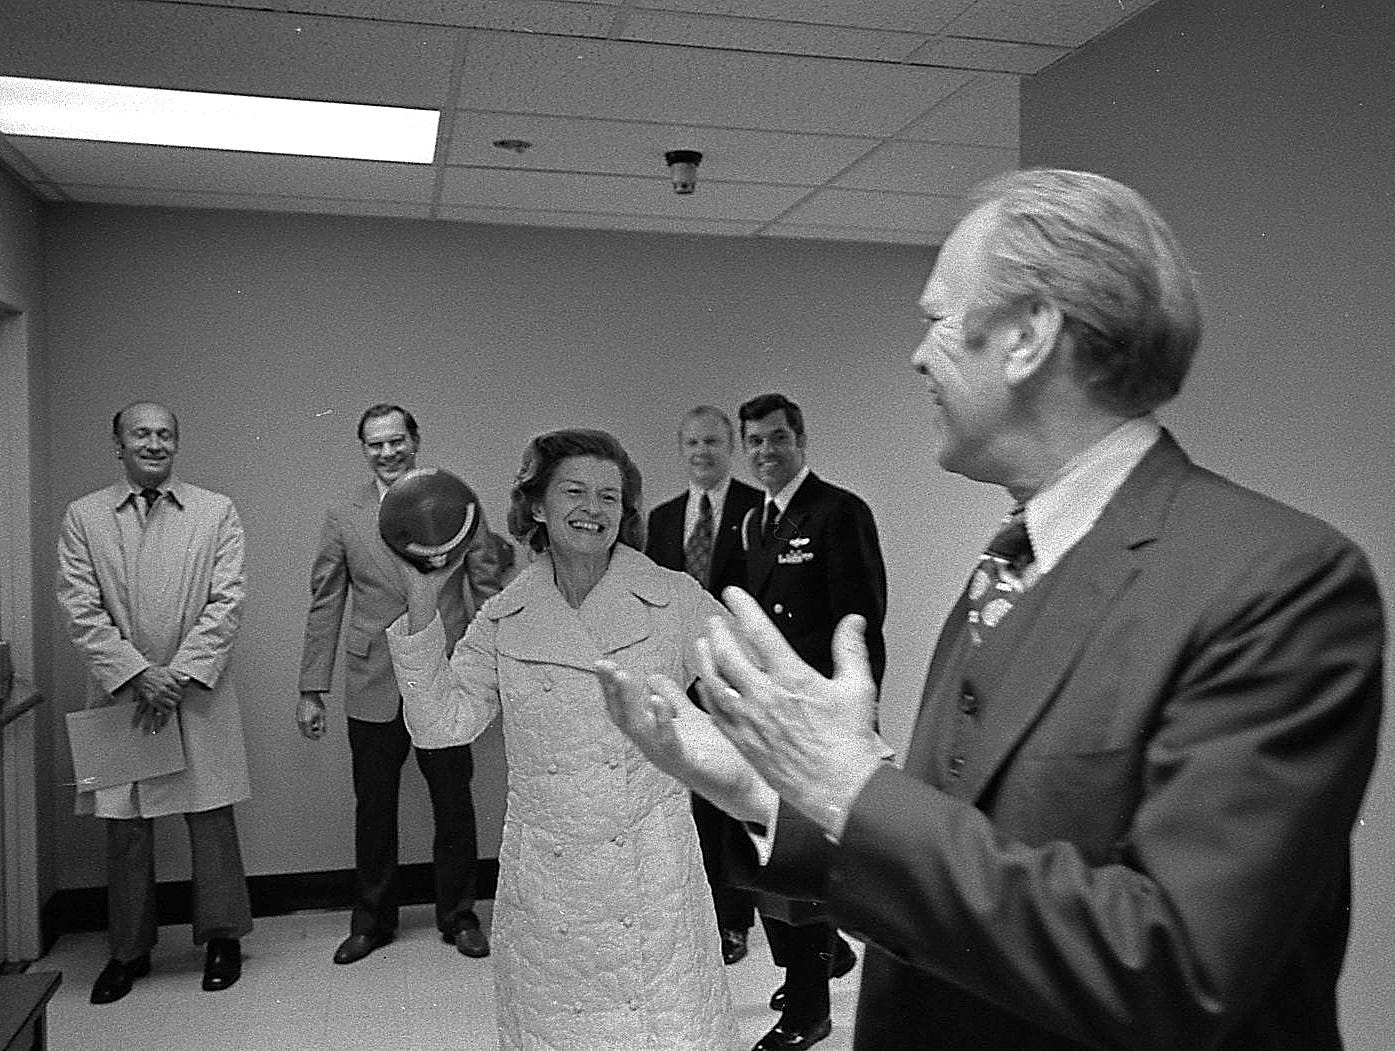 Eager to show everyone how well she was recovering, Betty tossed a football, a gift from Washington Redskins coach George Allen, to President Ford in the hospital hallway, barely a week after her breast cancer surgery.